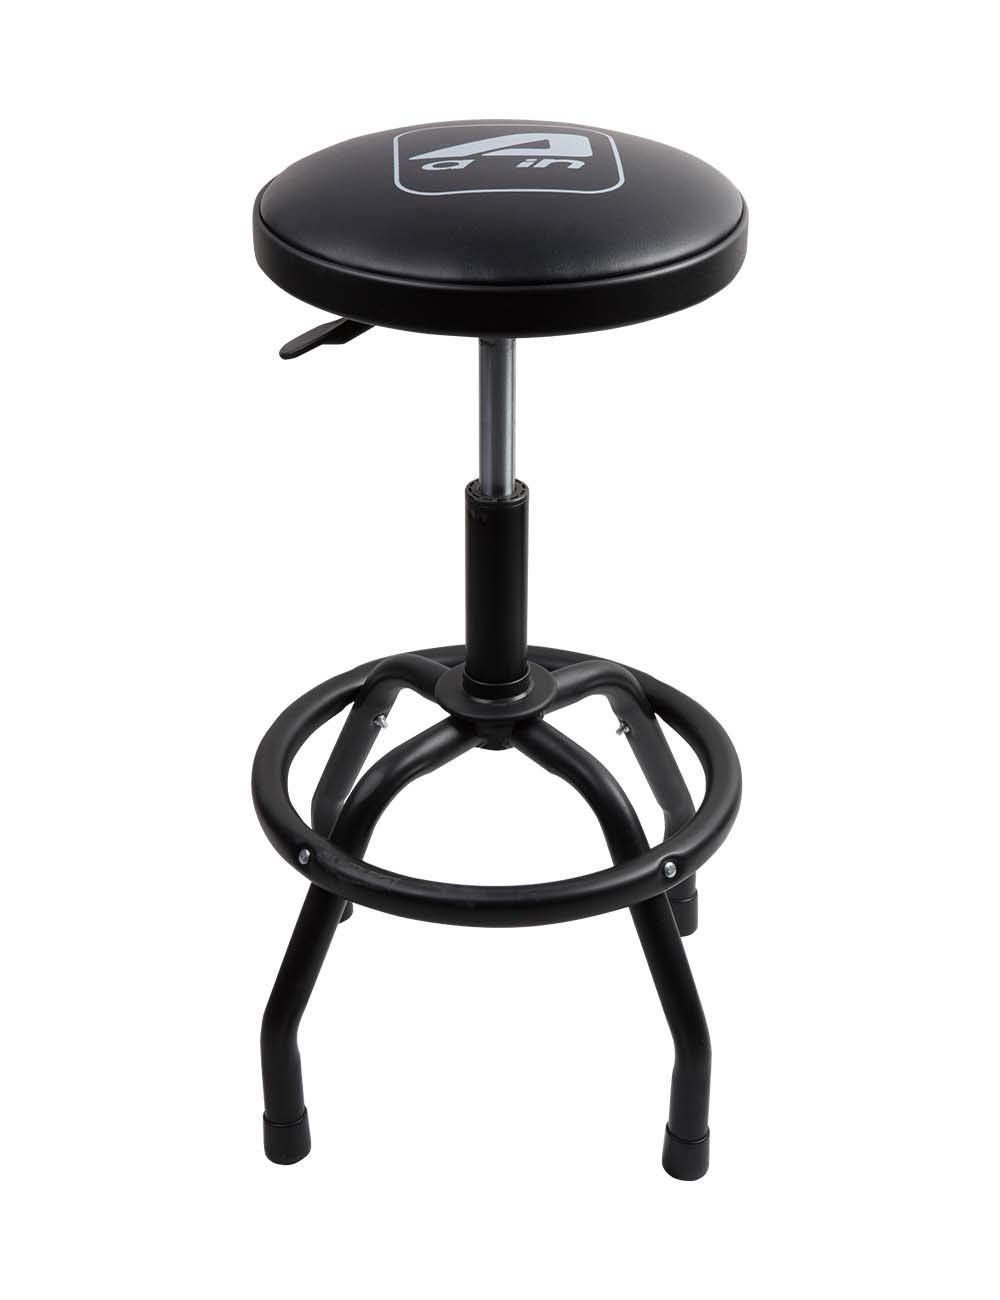 Aain LT013 Garage Bar Stool,Heavy Duty Adjustable Pneumatic Shop Stool with Black Powder Coating Finish Steel Legs for Garger,Workshop and Auto Repair Shop(Black)